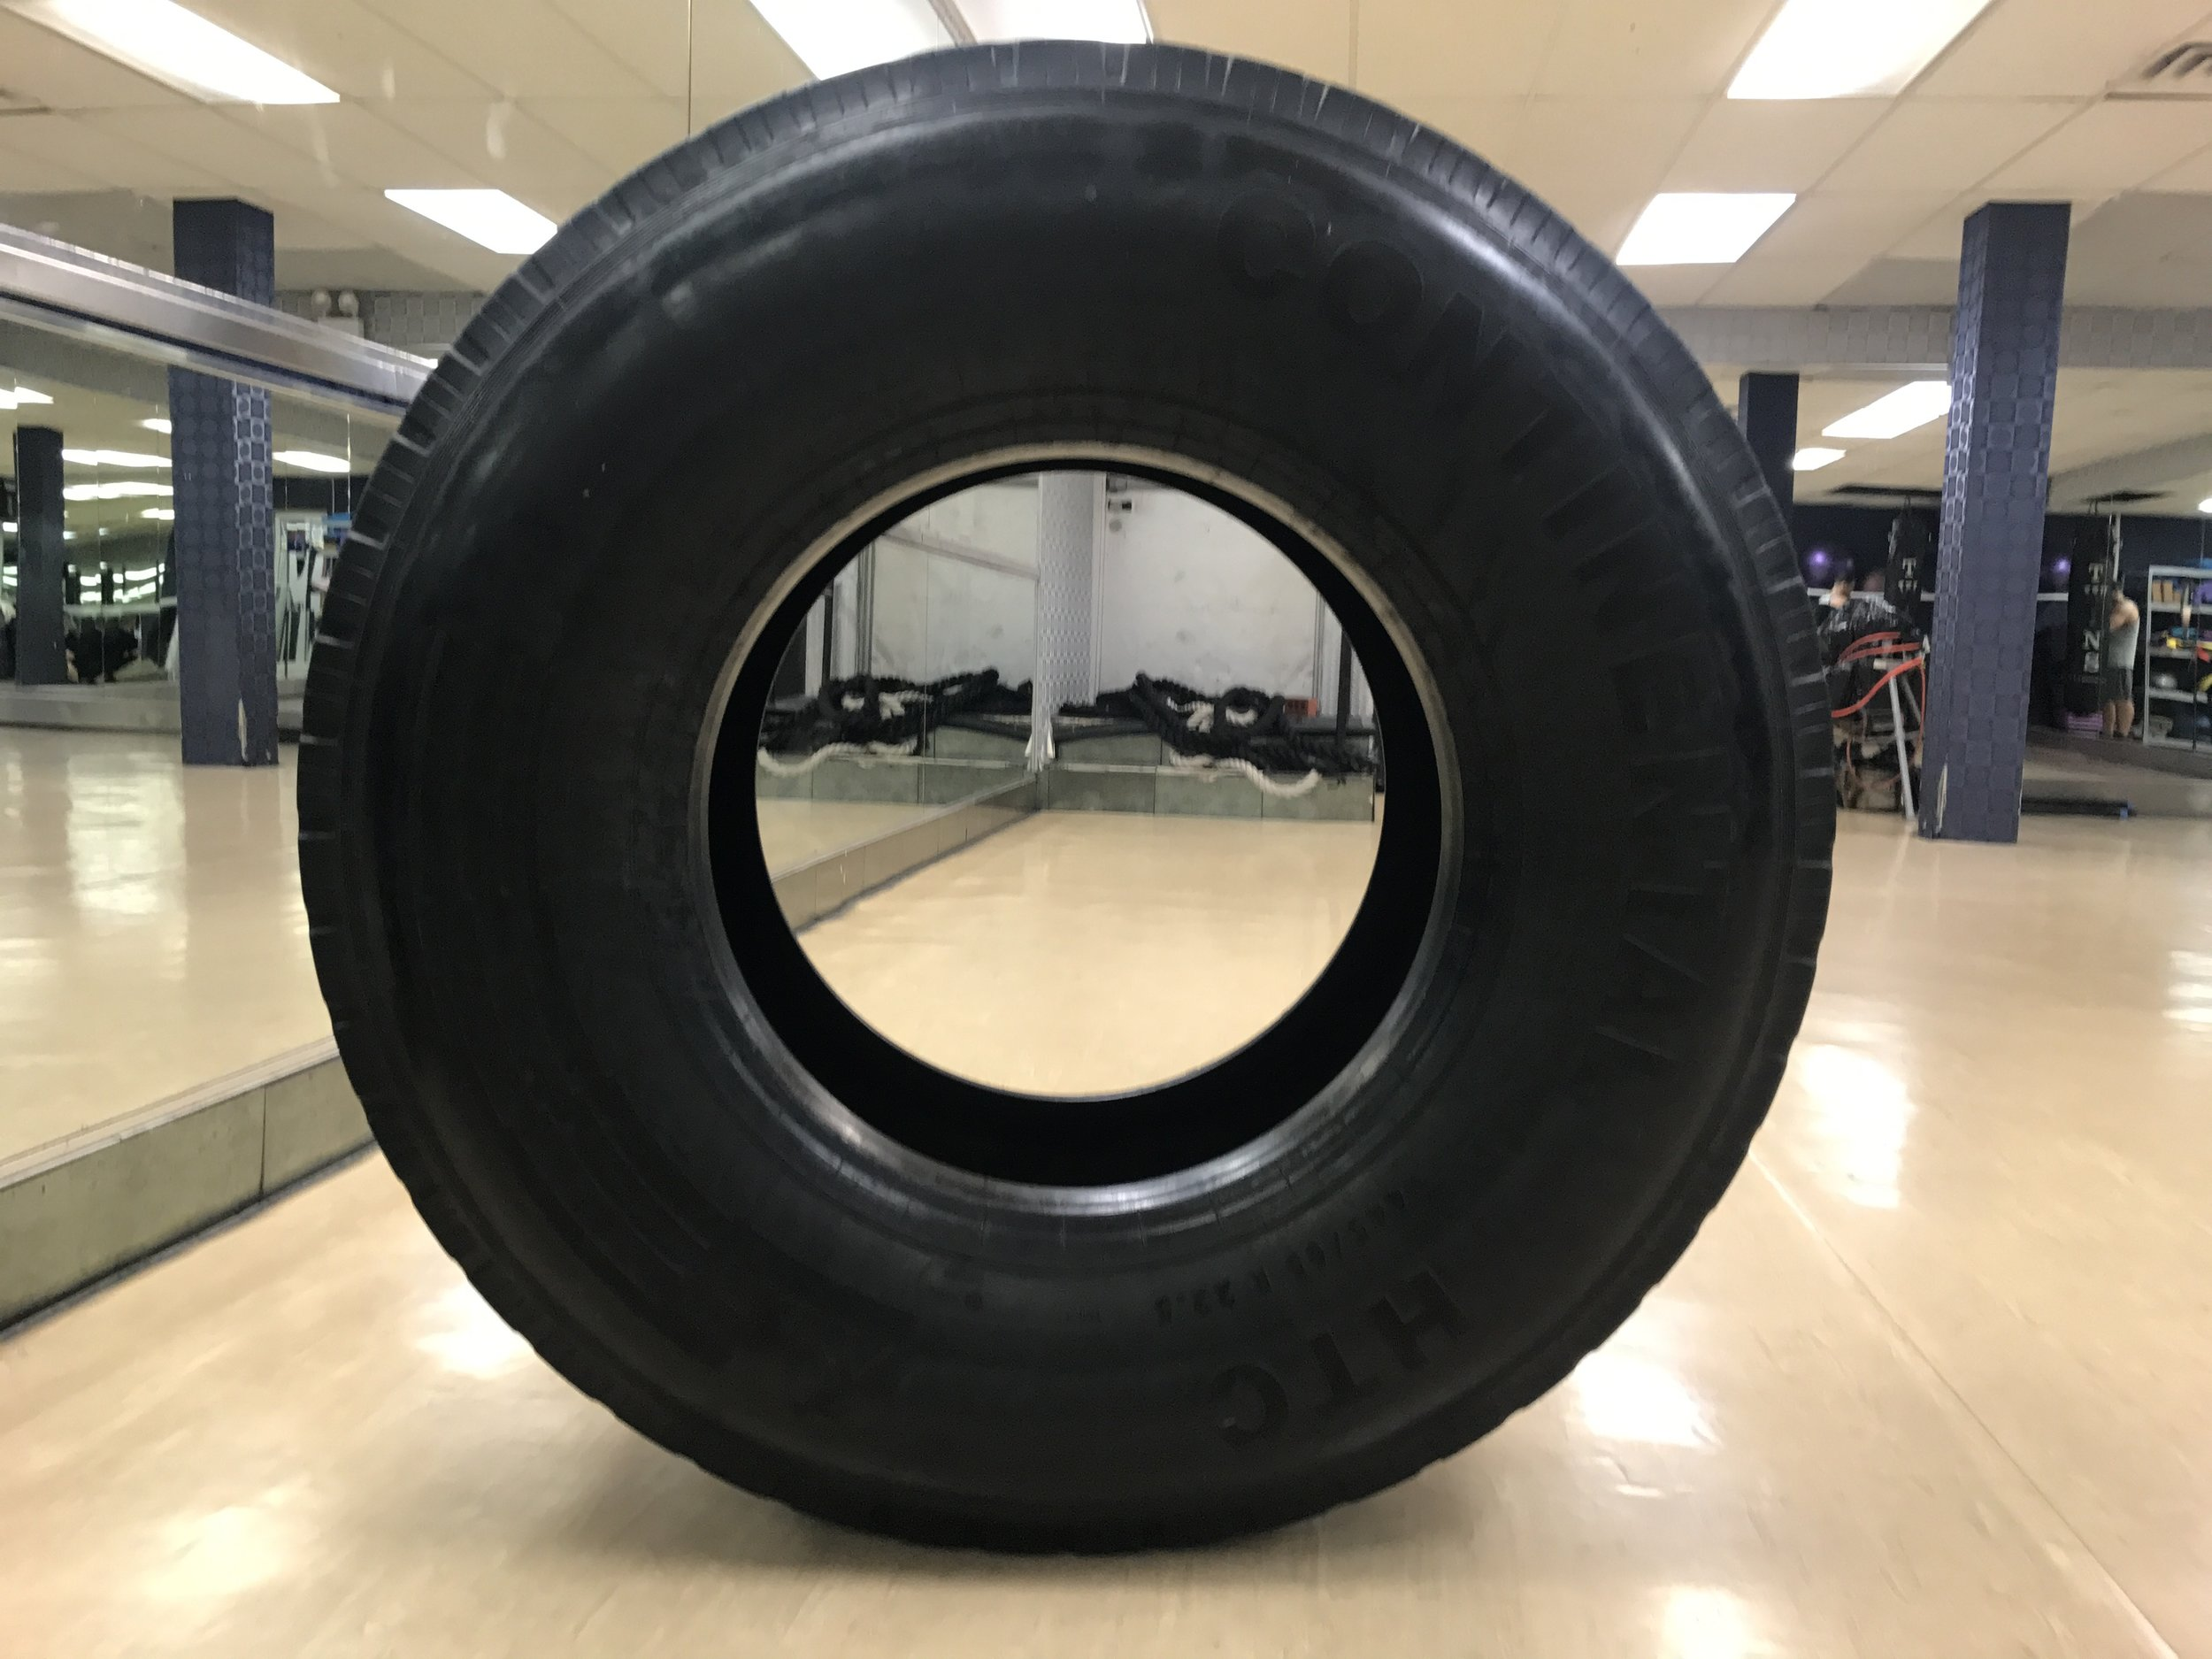 NYC branded lifestyle portrait tire at gym